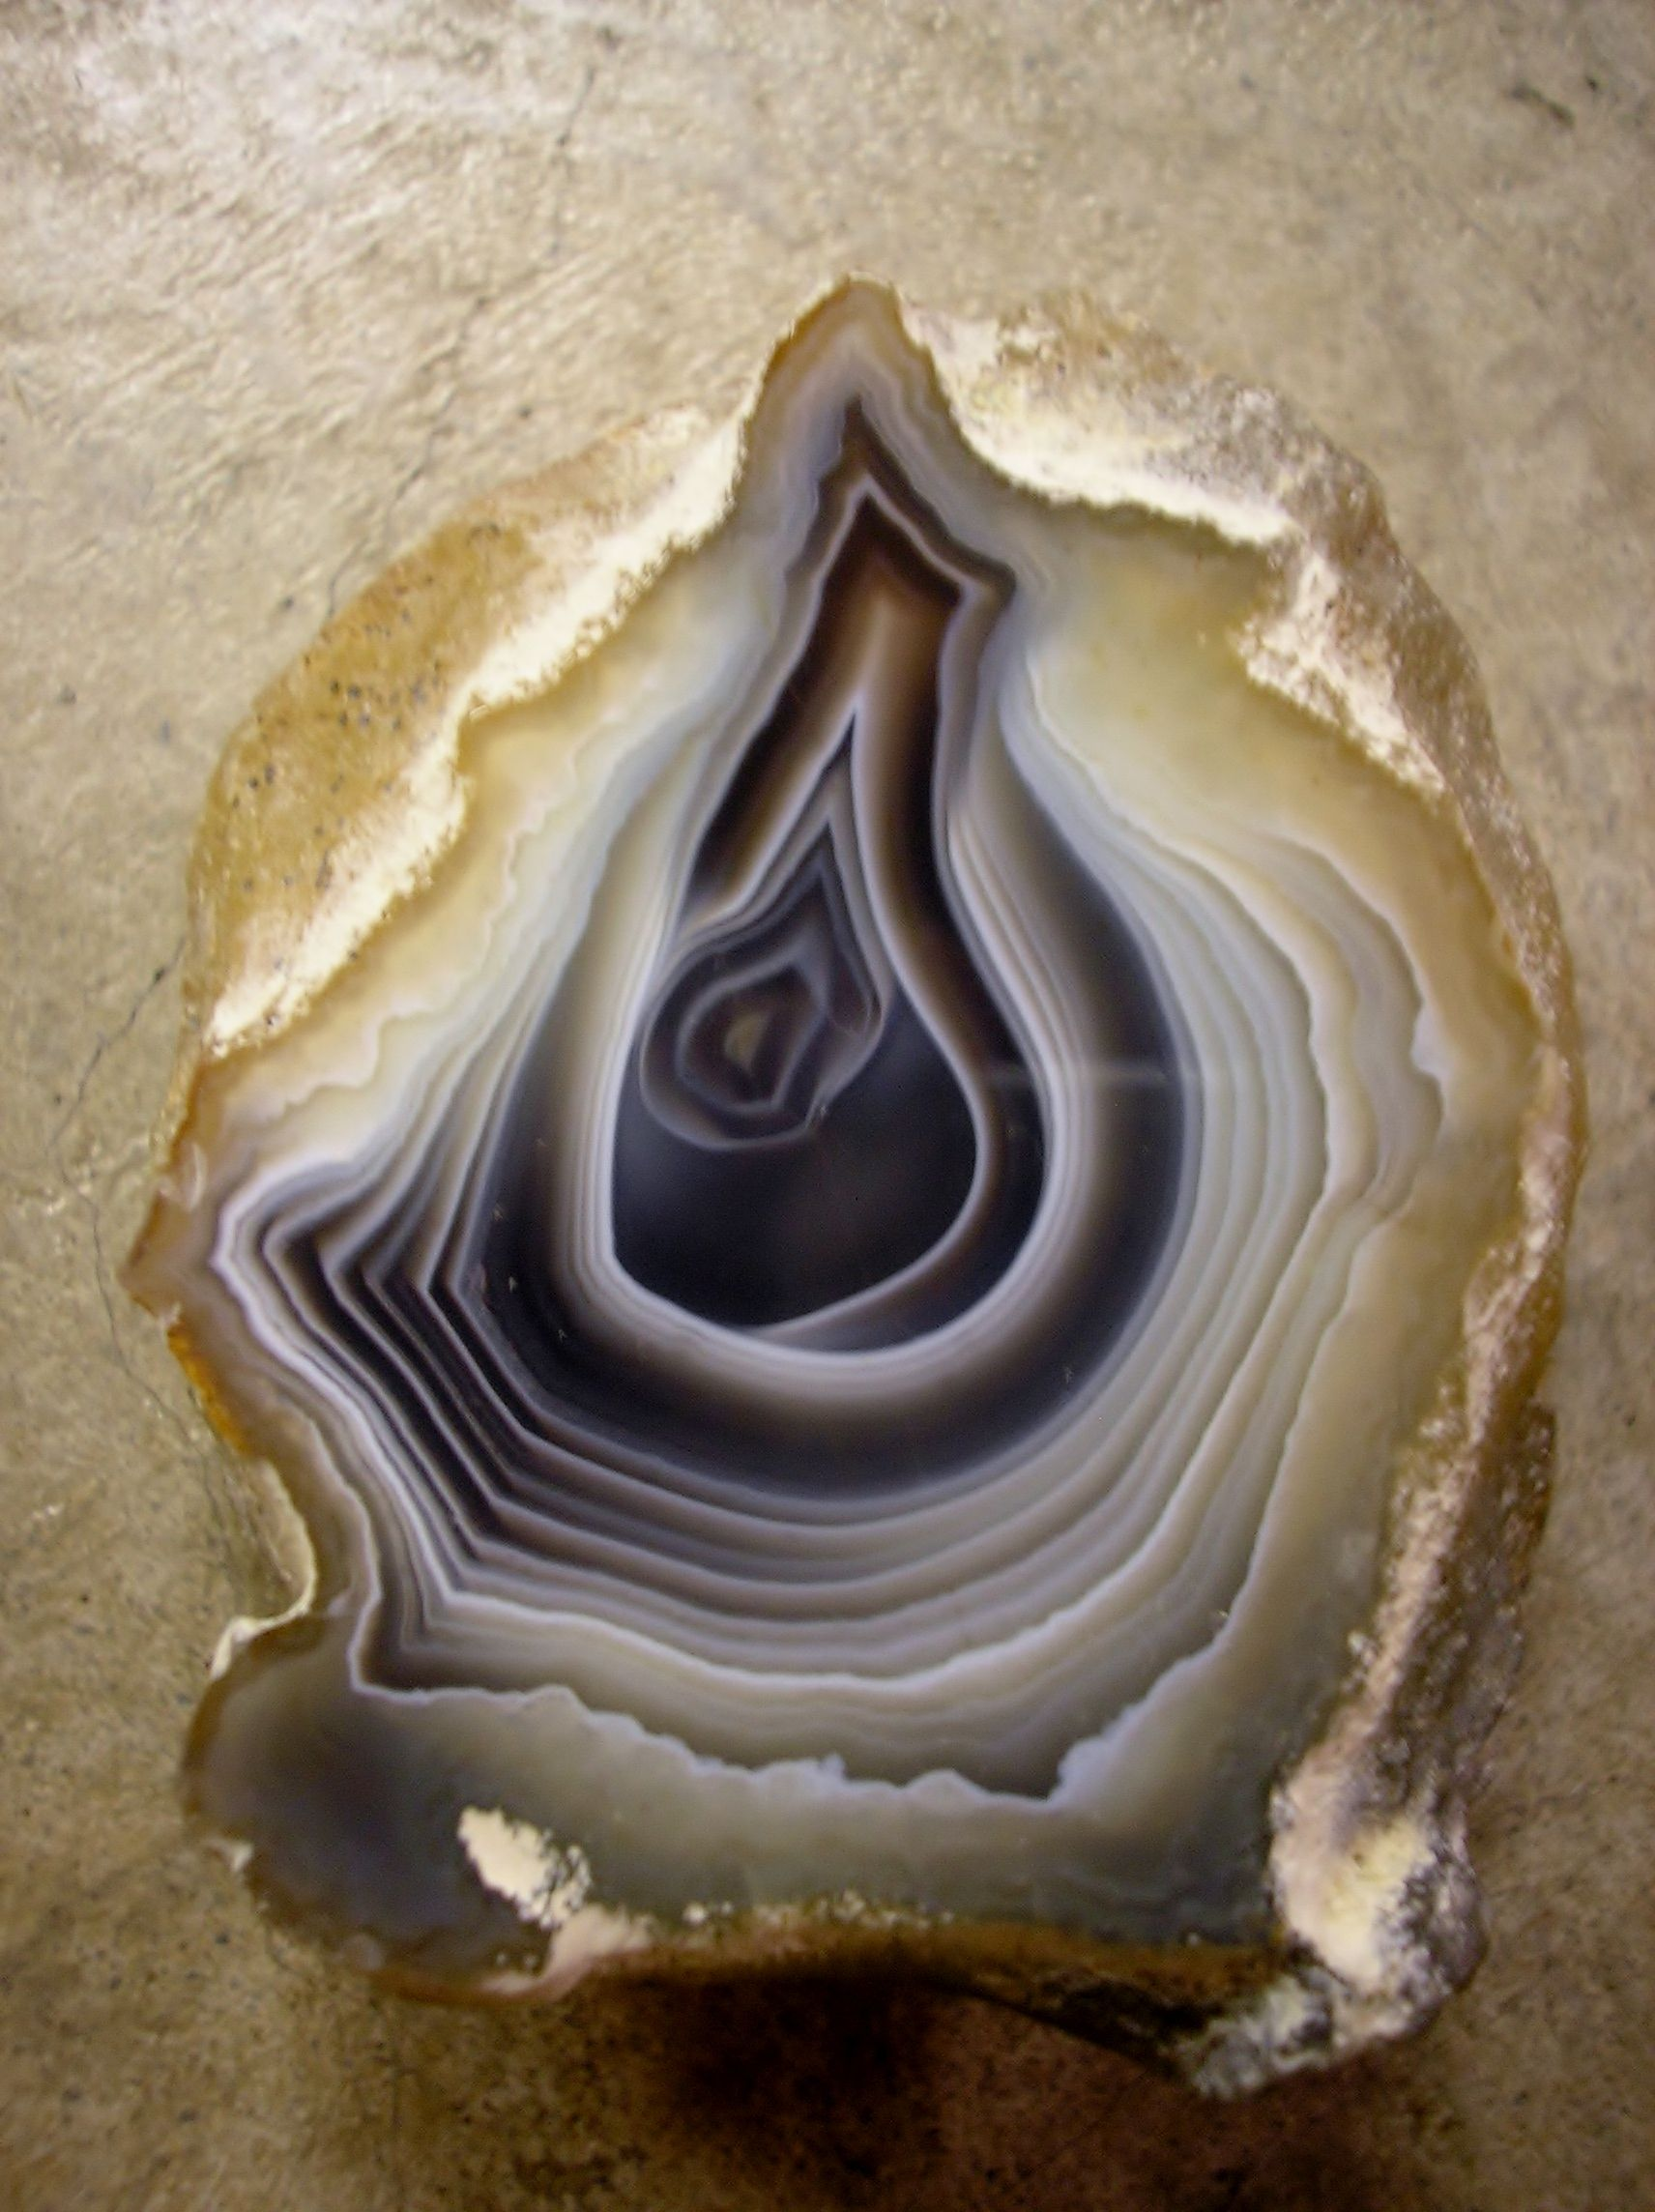 Slice Of Botswana Agate I Cut And Polished Rocks Of The